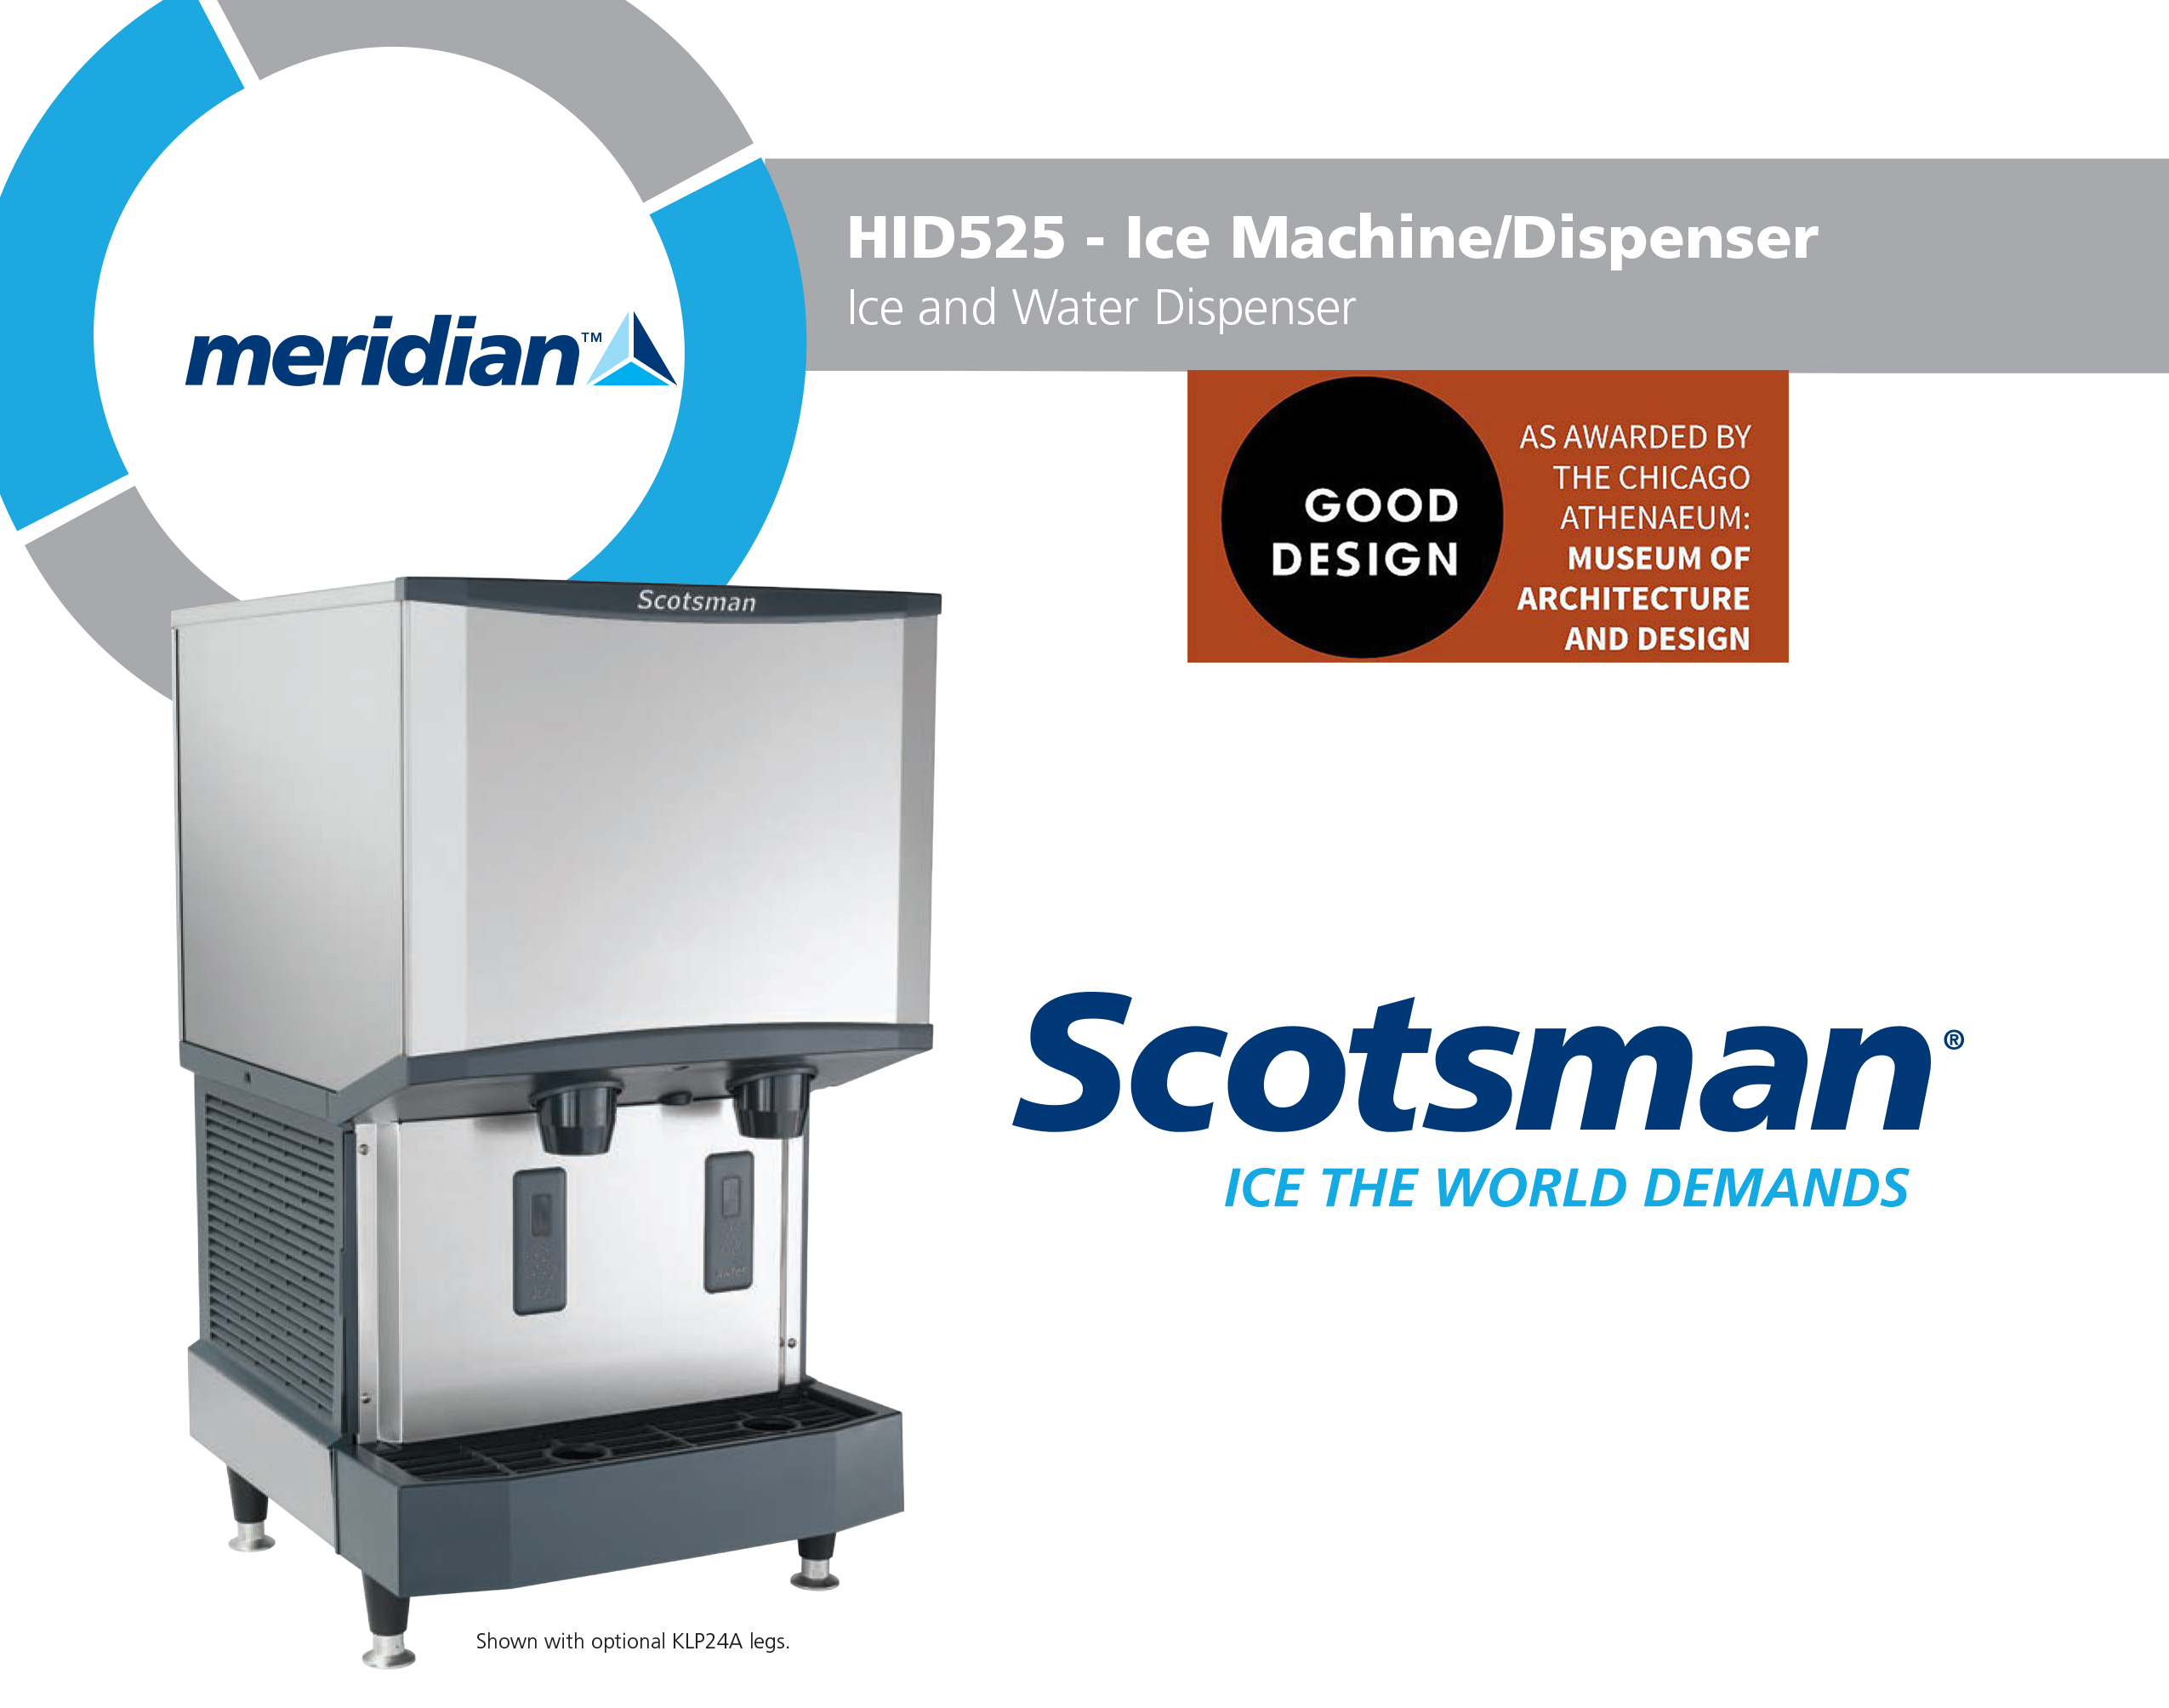 scotsman nugget machine manual